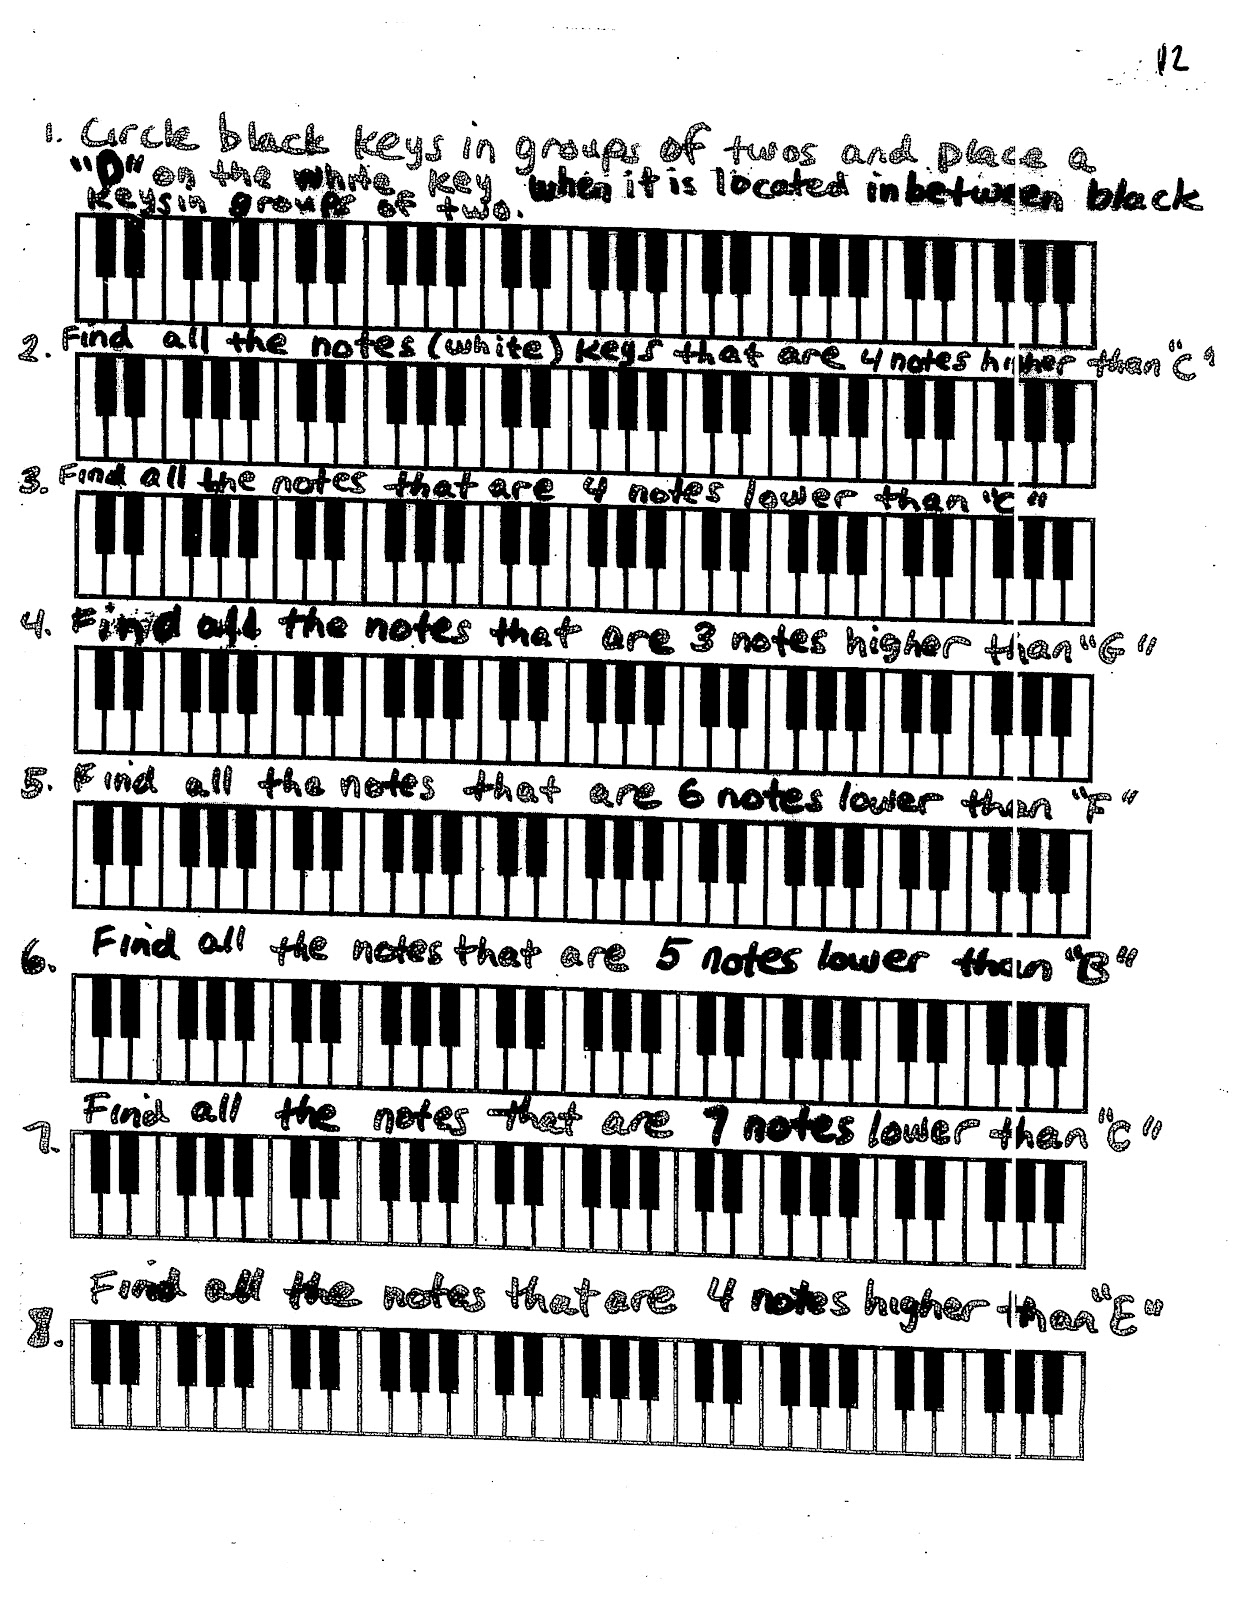 Miss Jacobson S Music Theory 2 Musical Alphabet On The Keyboard White Key Identification